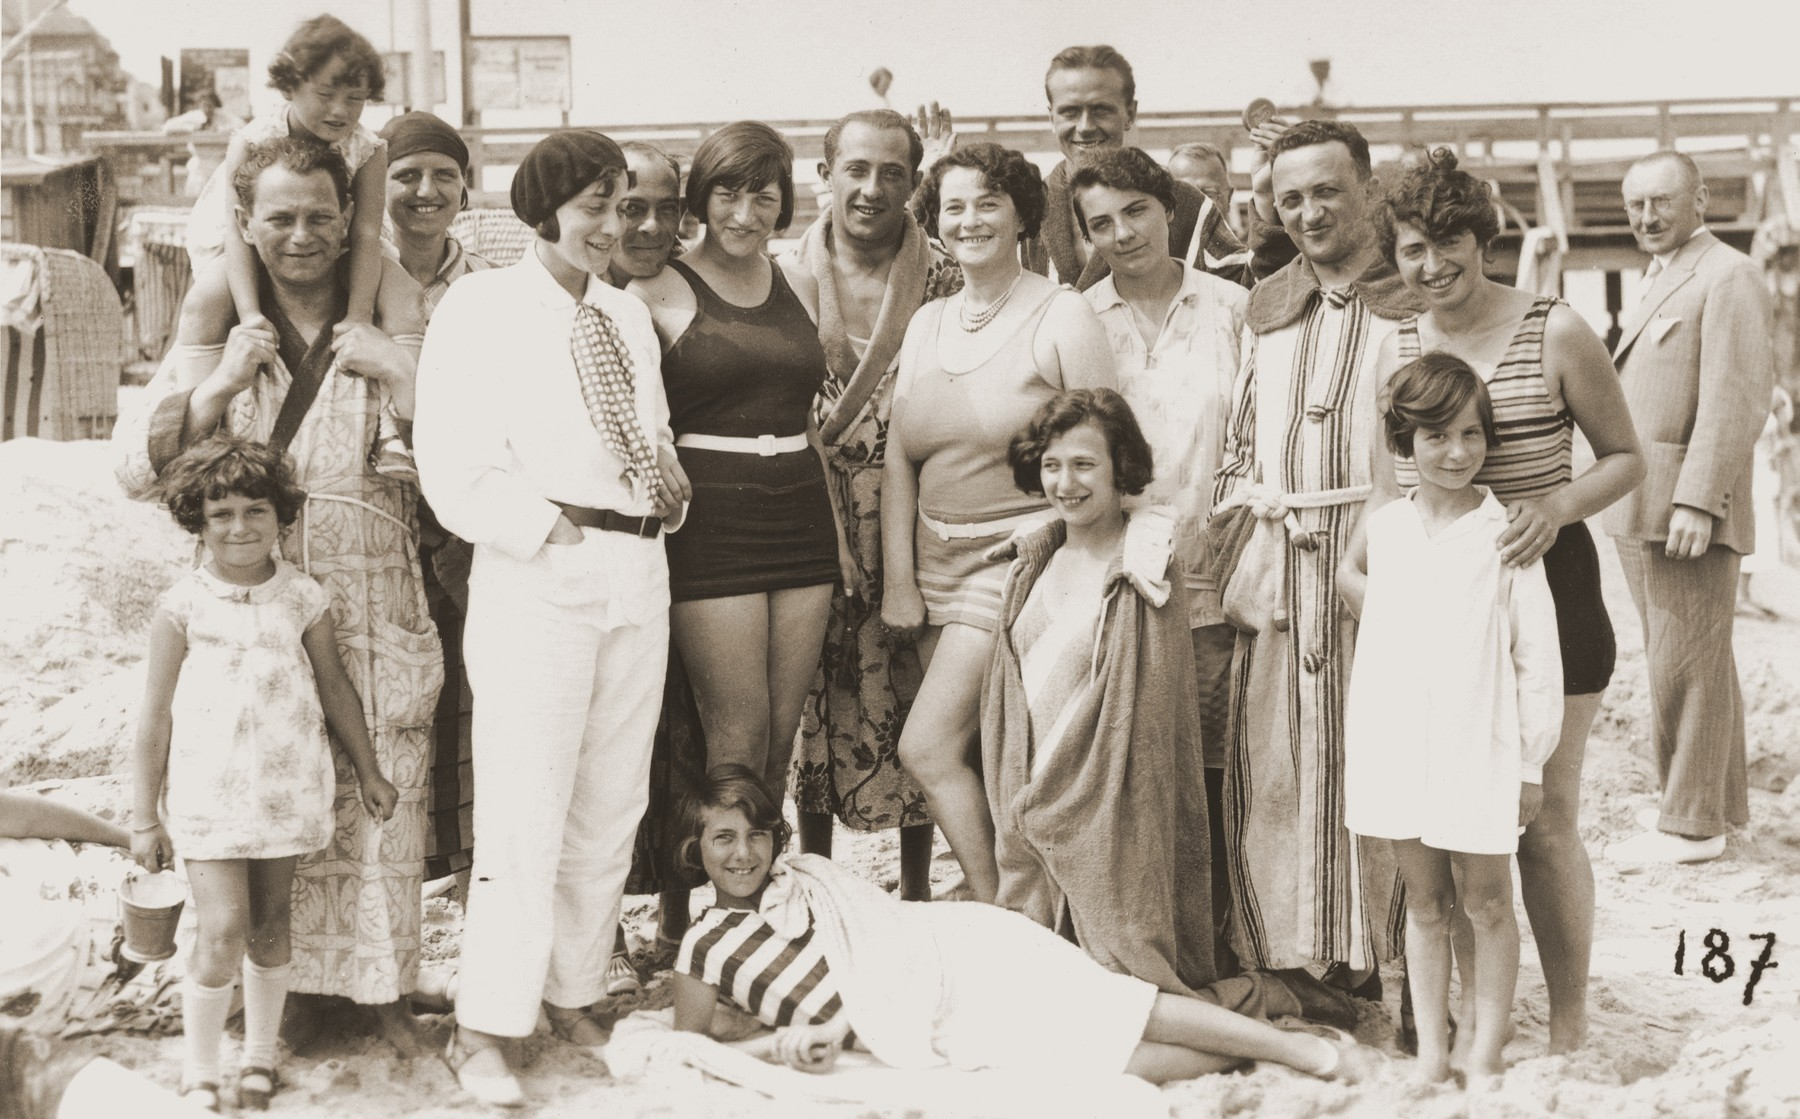 Inge Marx and Trude Zenner (extreme right) pose with their families on a beach on the Arendsee.